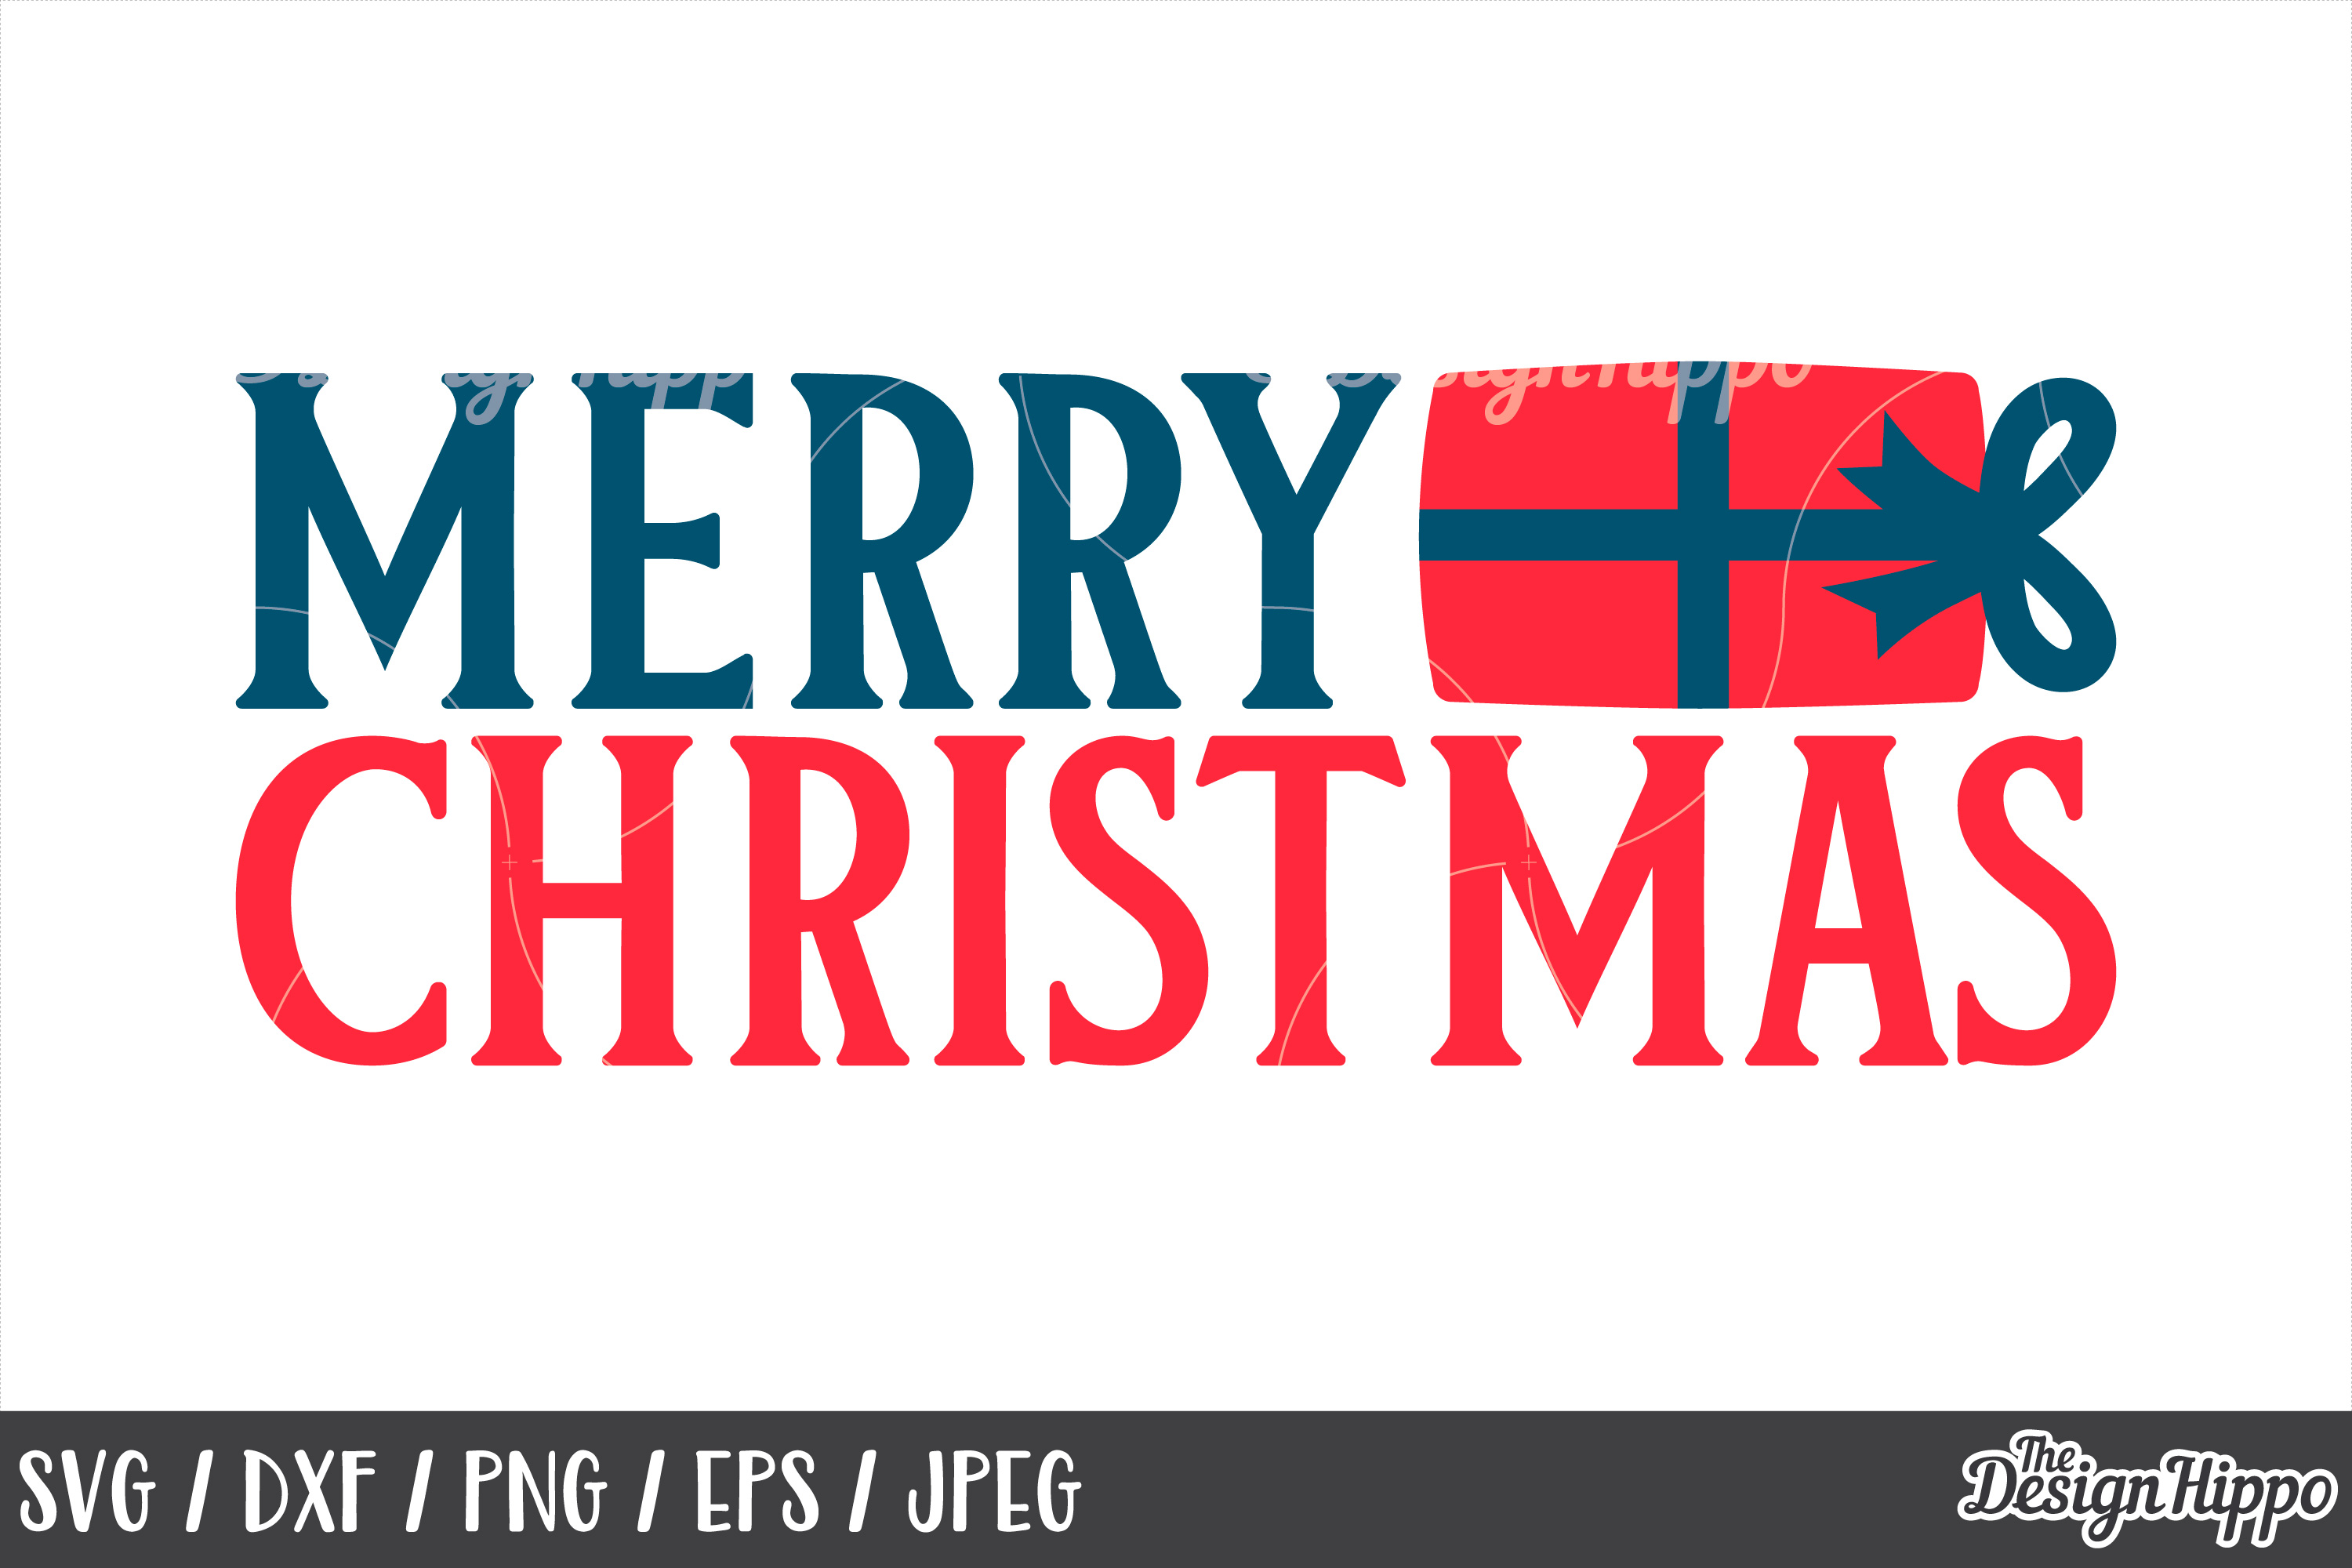 Christmas, Merry Christmas SVG, Gift, DXF, PNG, Cut Files example image 1